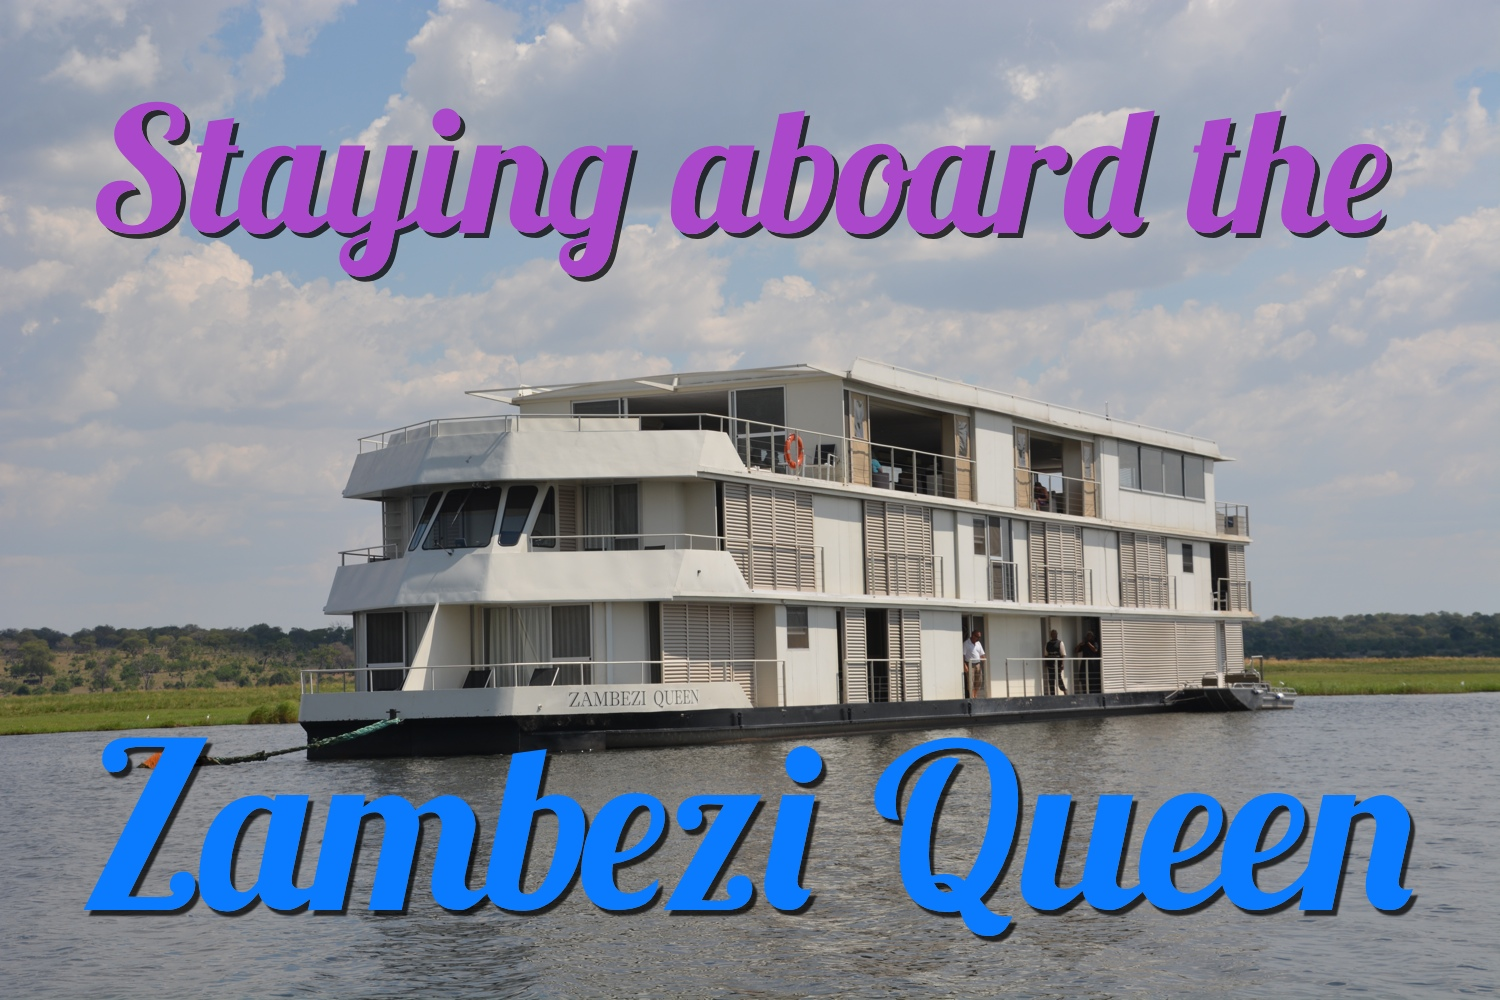 Staying Aboard the Zambezi Queen Houseboat